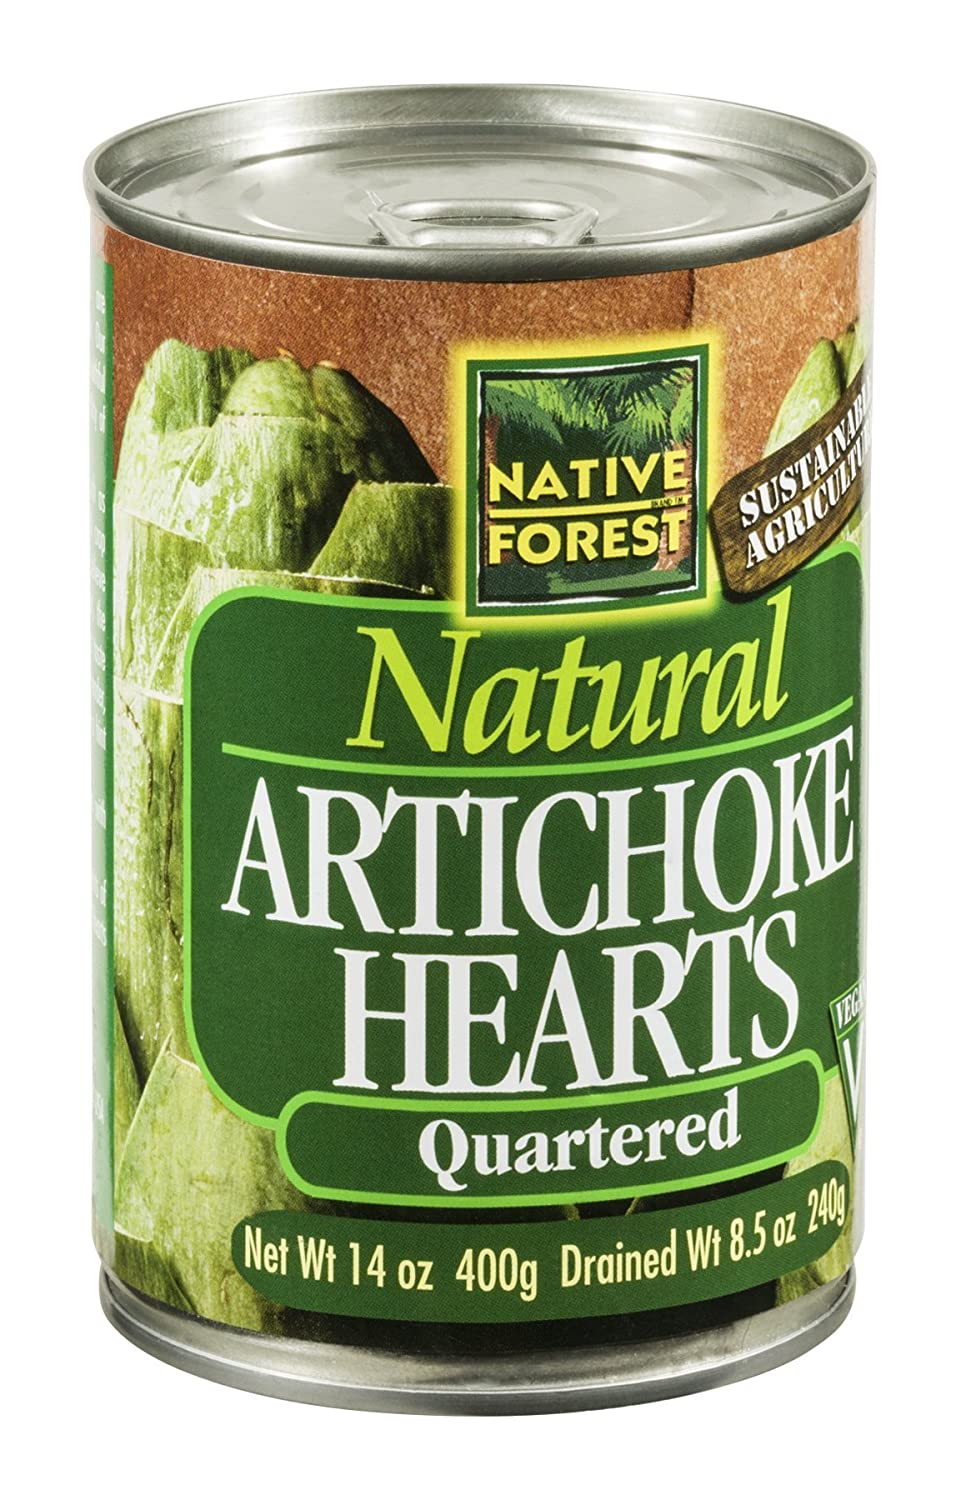 Native Forest Artichoke Hearts, Quartered, 14-Ounce Cans (Pack of 6) ( Value Bulk Multi-pack) for alfa romeo giulia 2017 abs carbon fiber interior center console gear shift panel cover trim auto accessory